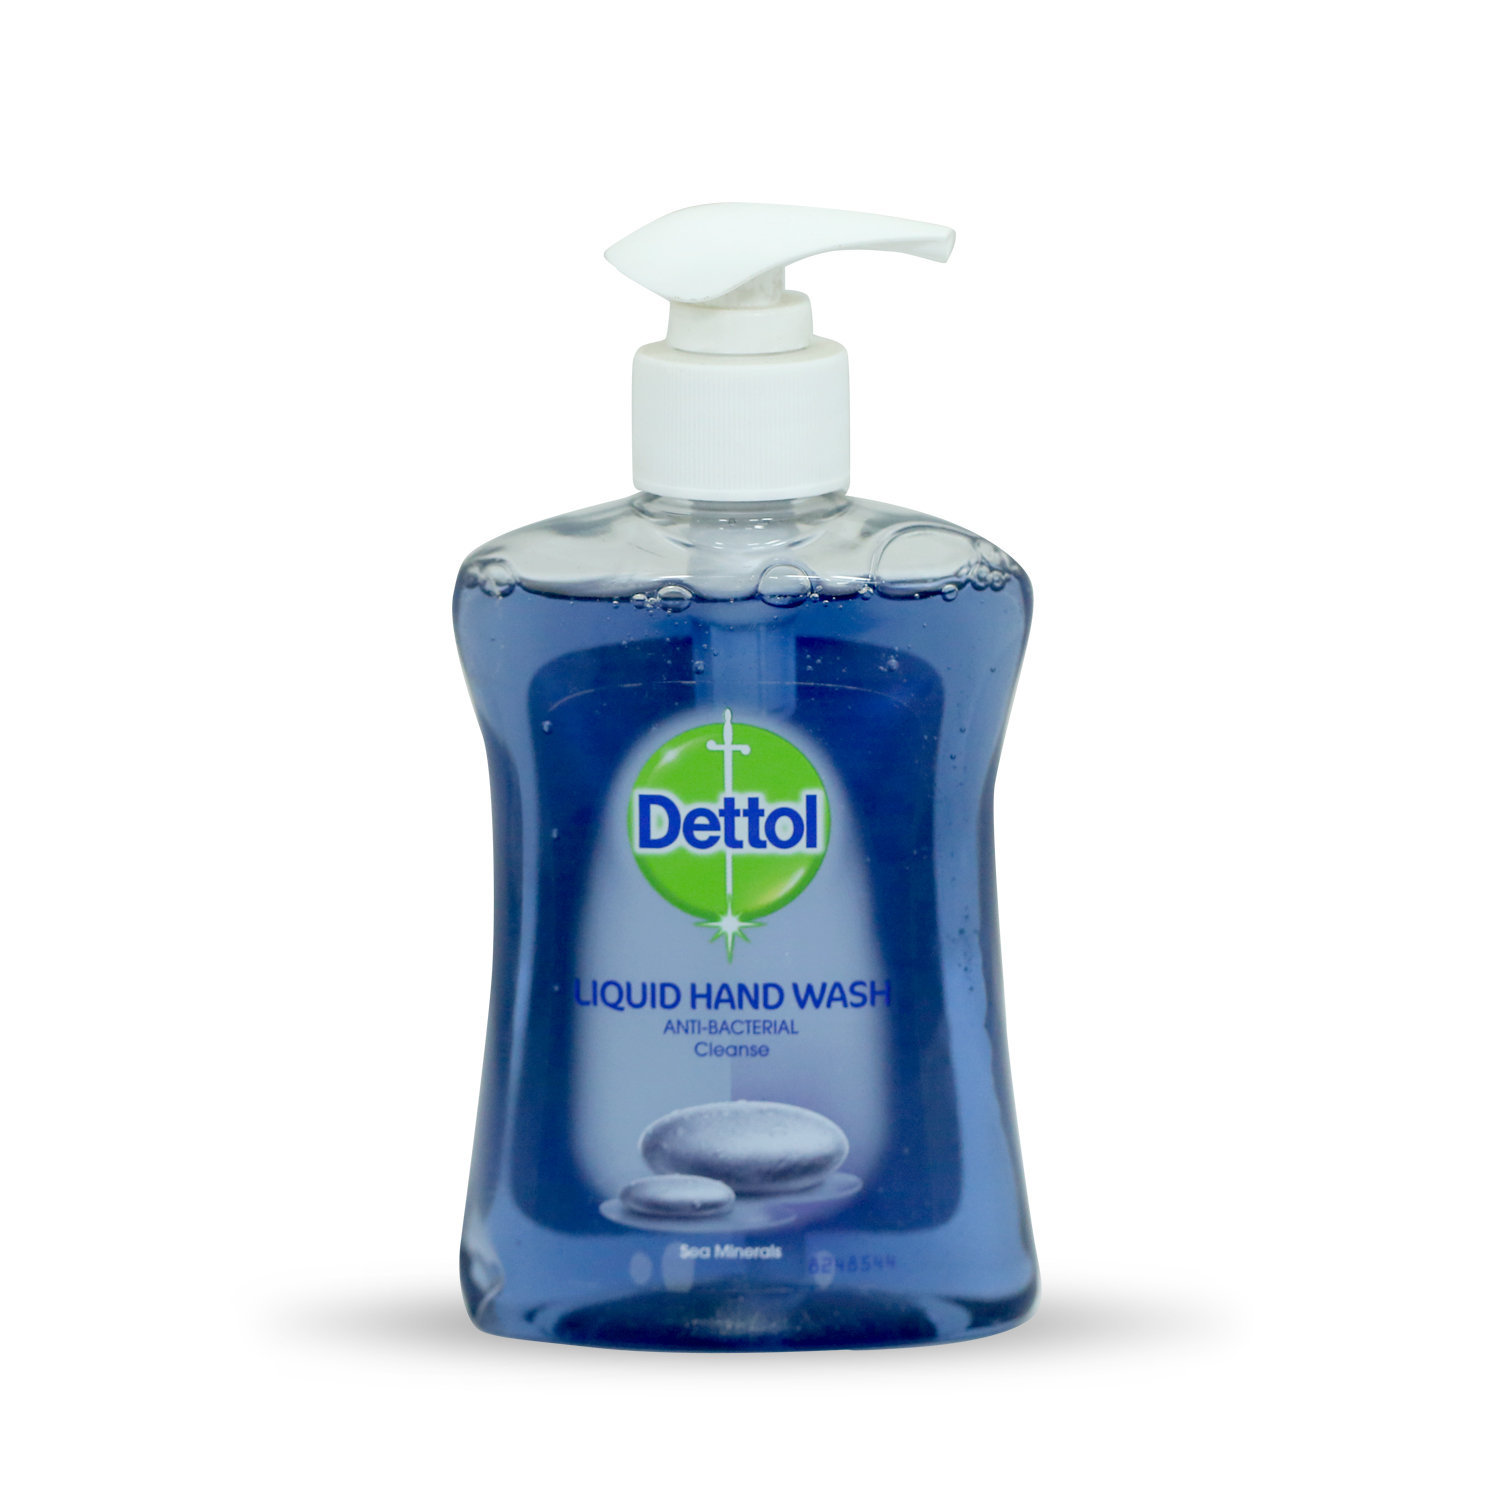 Dettol Cleanse Hand Wash 250ml (UK)